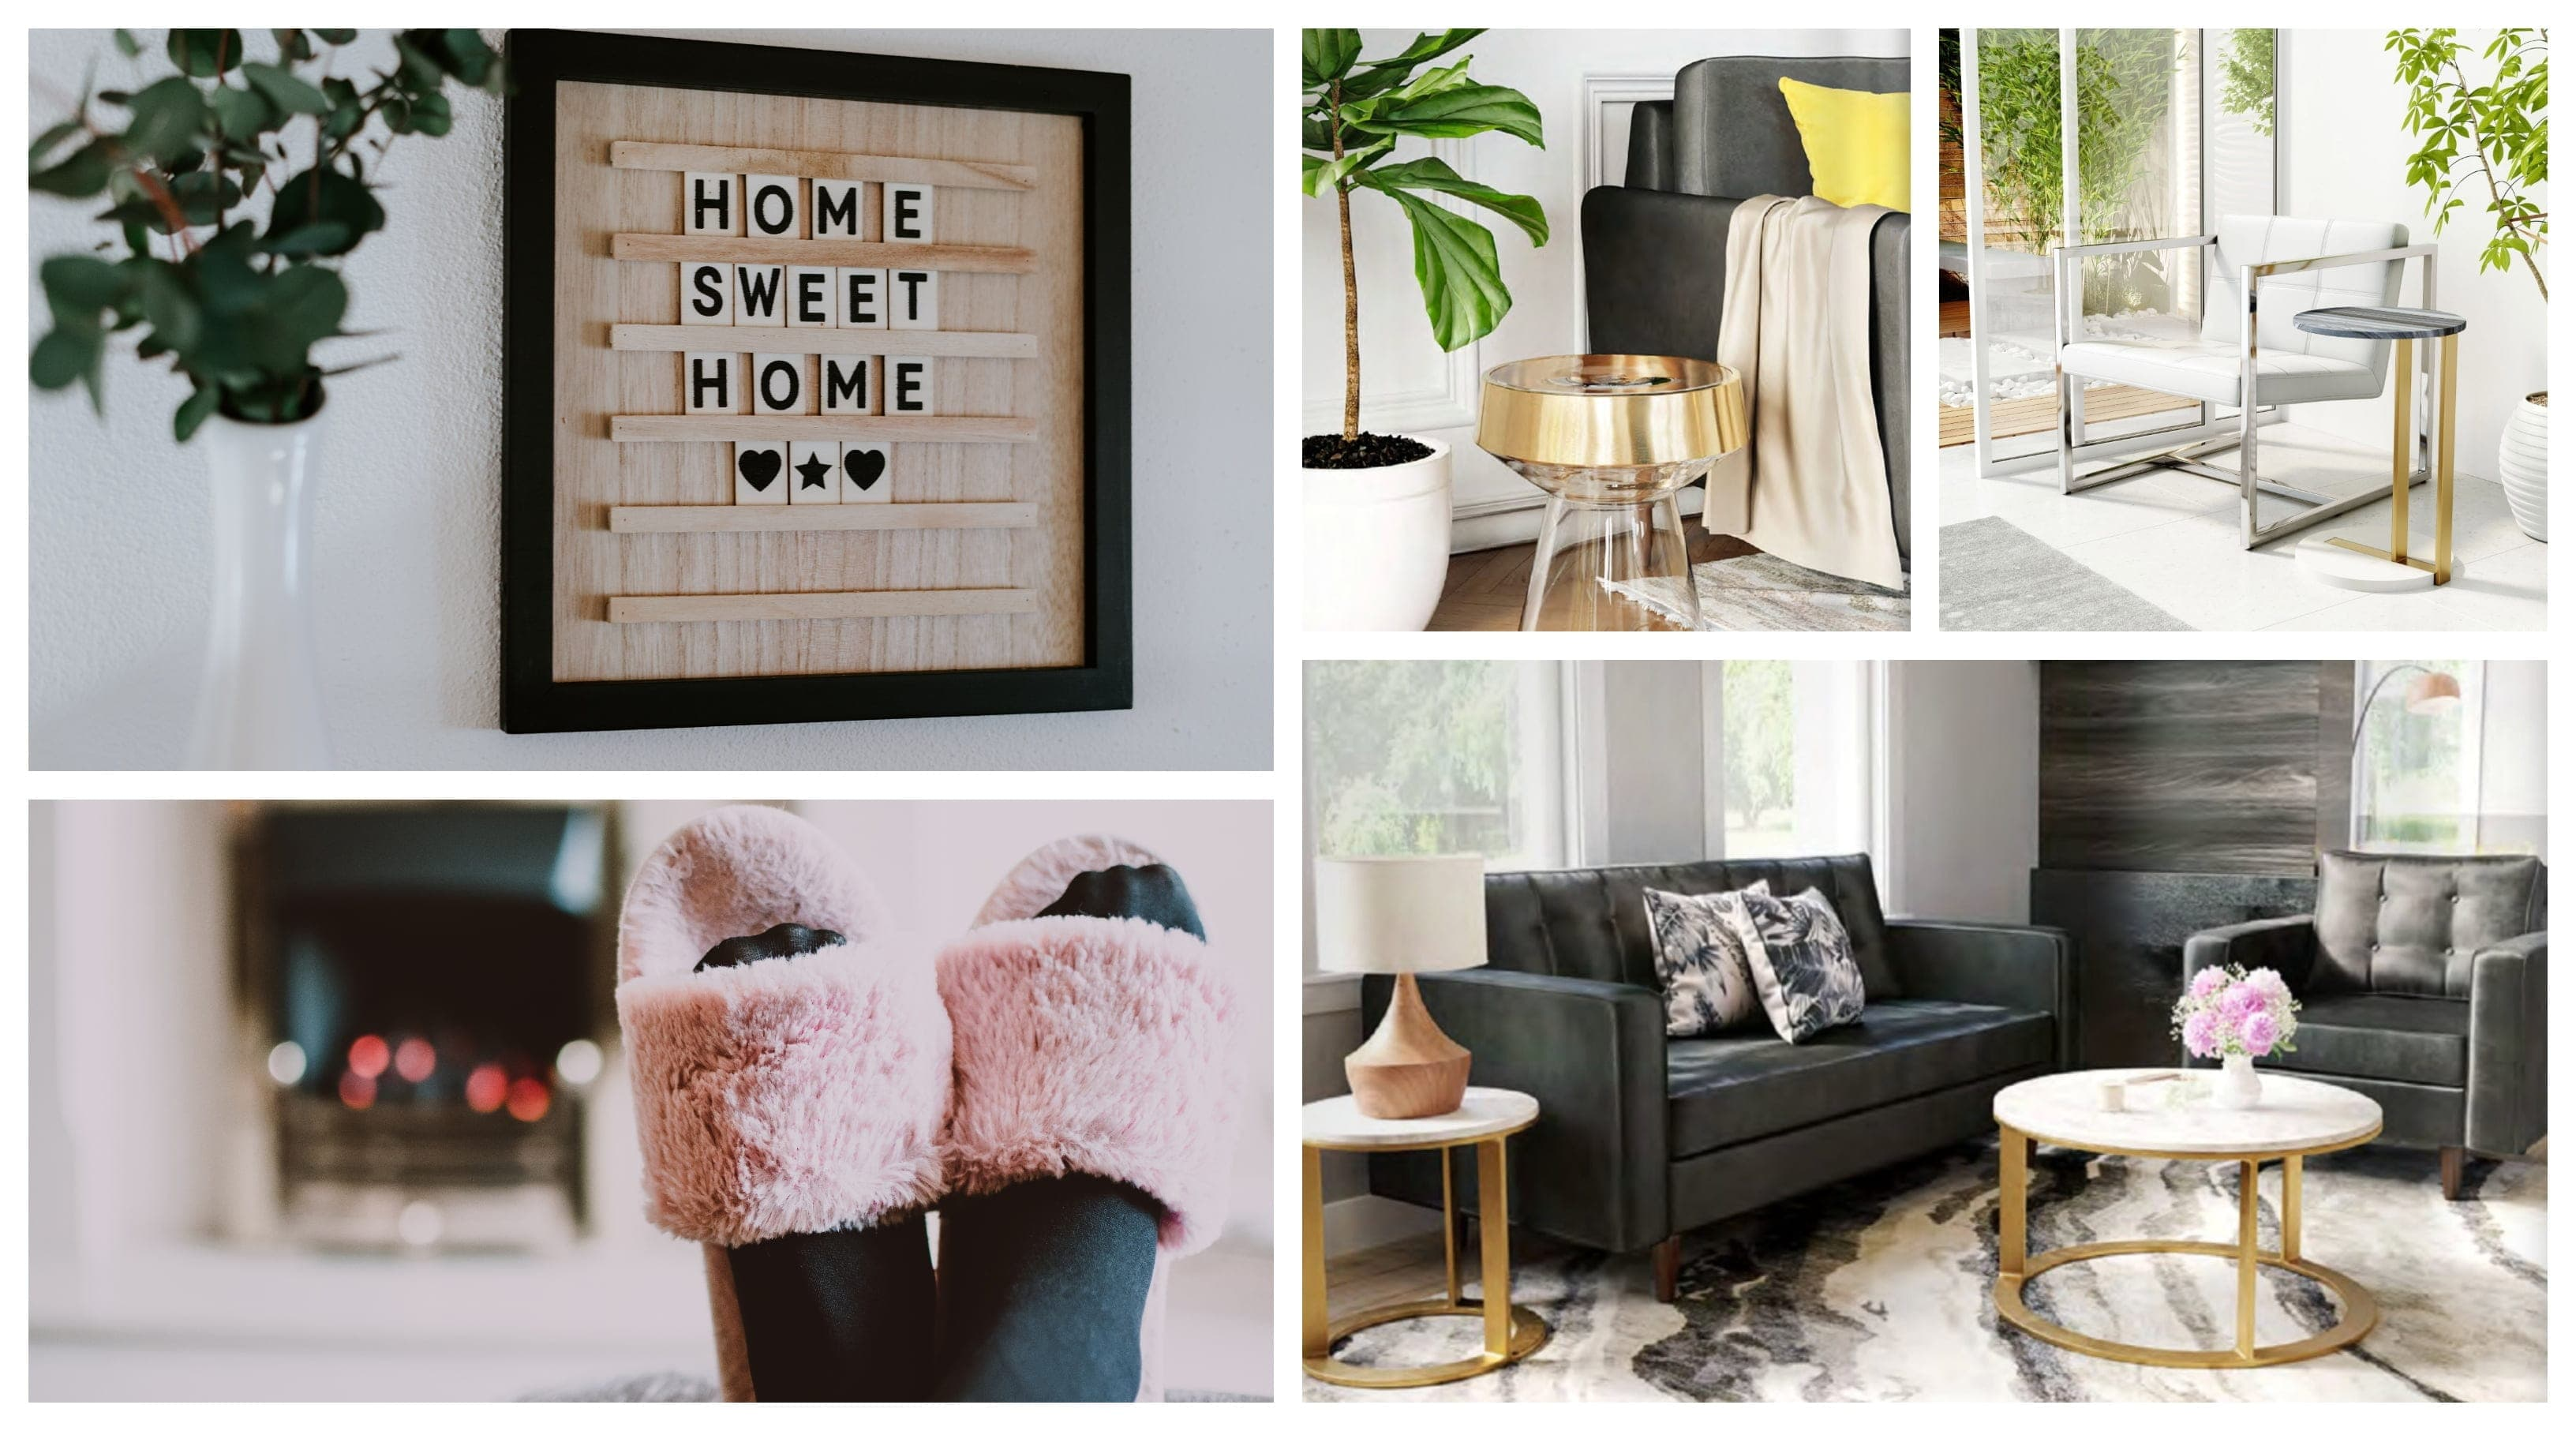 How to Make your Home Cozy with Modern Design